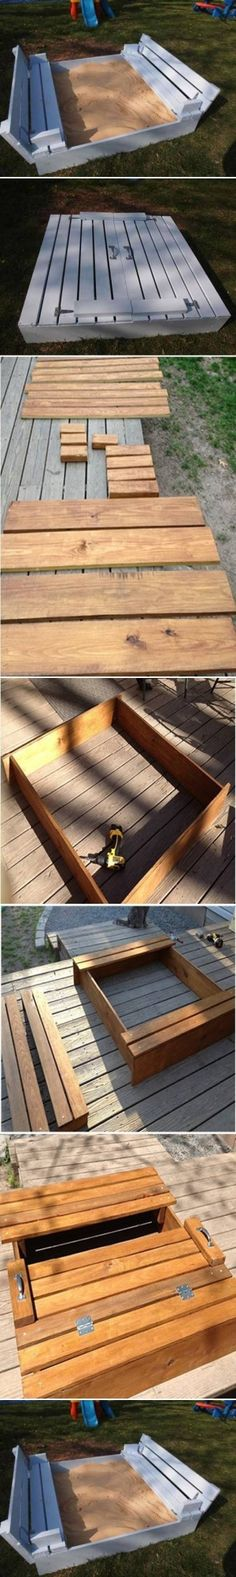 DIY Sandbox DIY Sandbox by diyforever